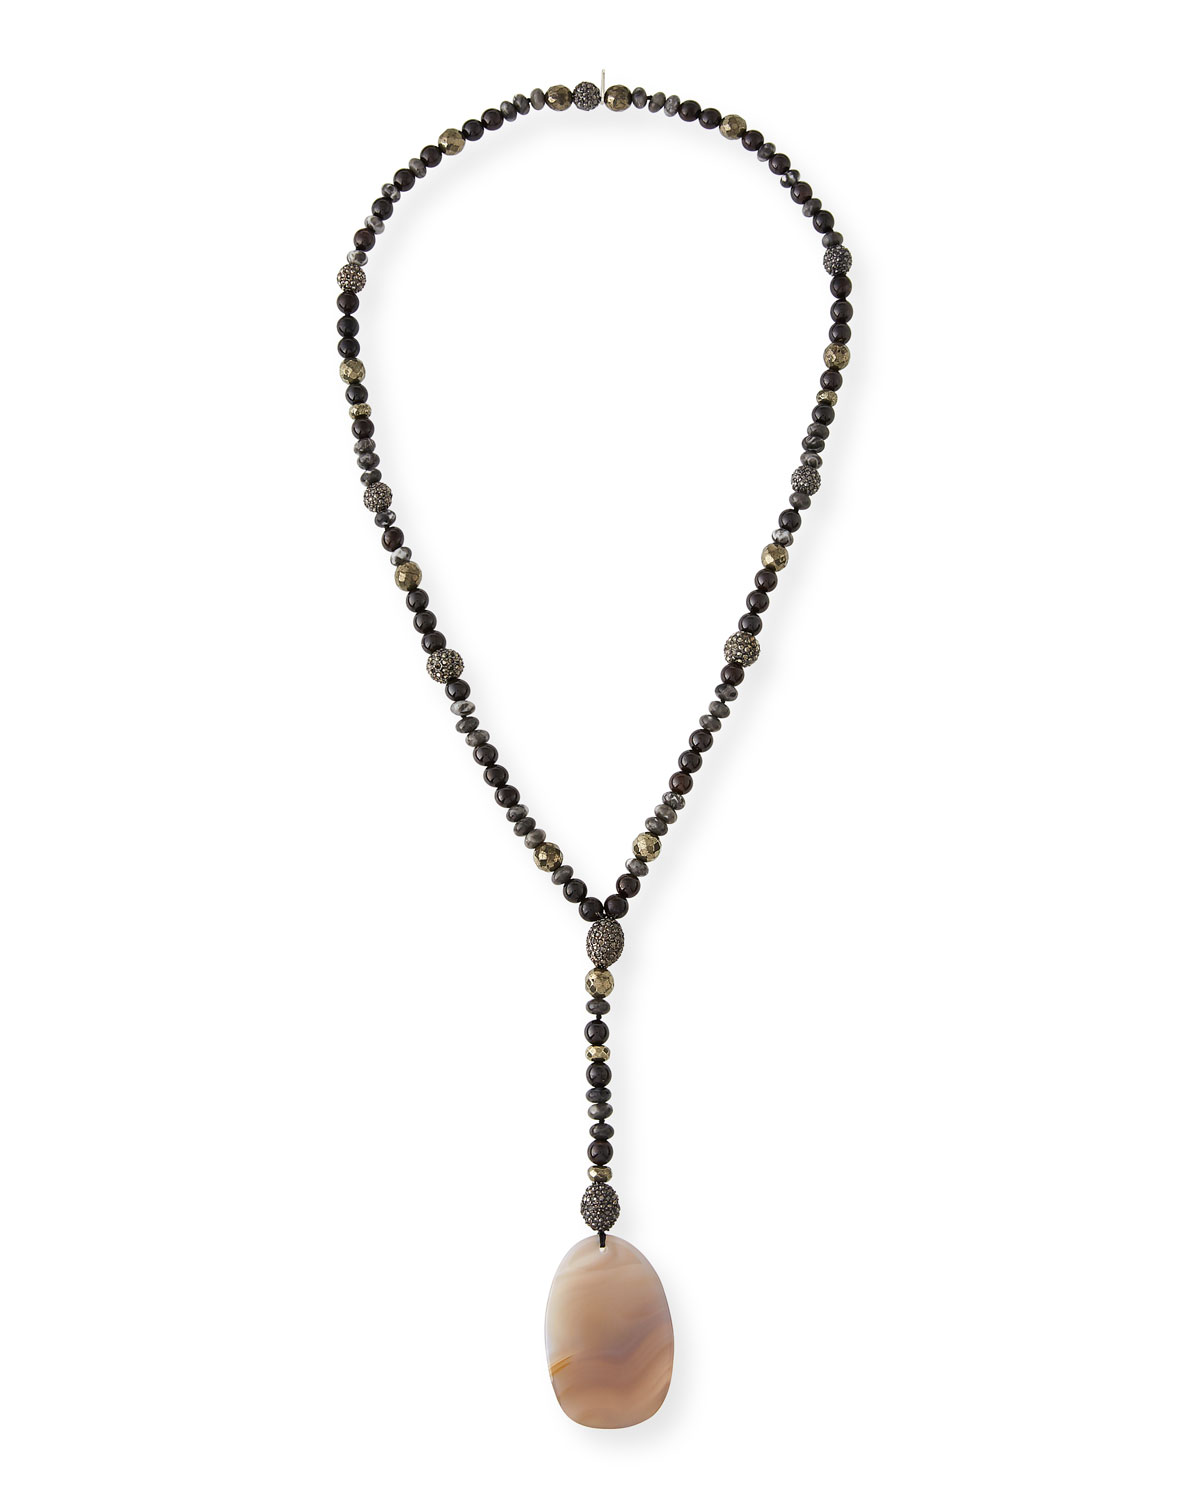 Amber Sliced Agate Pendant Necklace